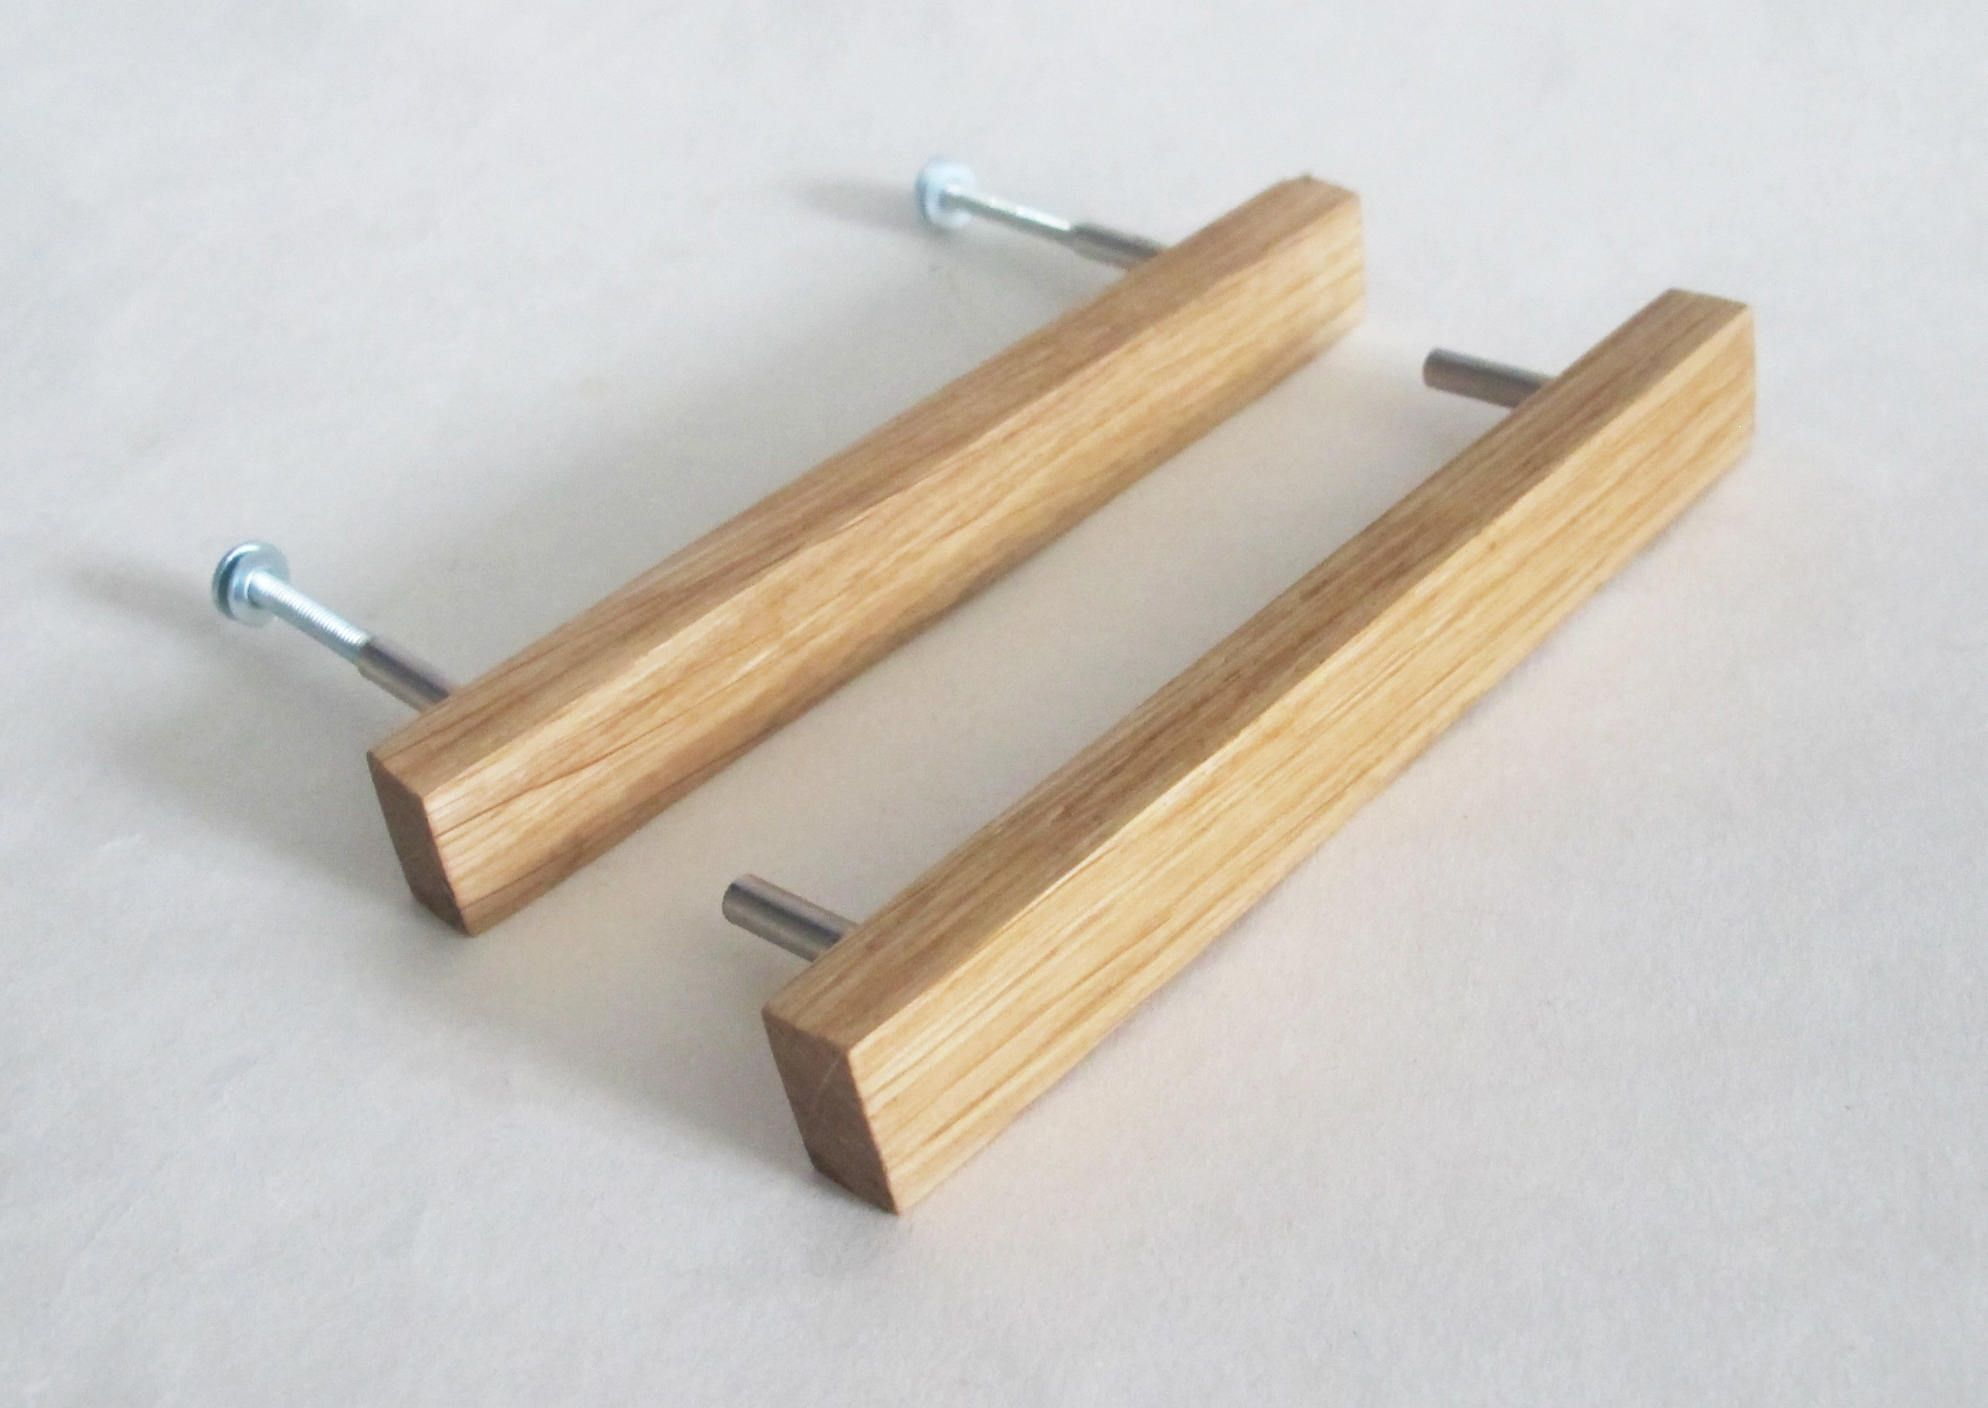 These Handmade Wooden Drawer Pulls Are Made From An Oak Wood The Set Of